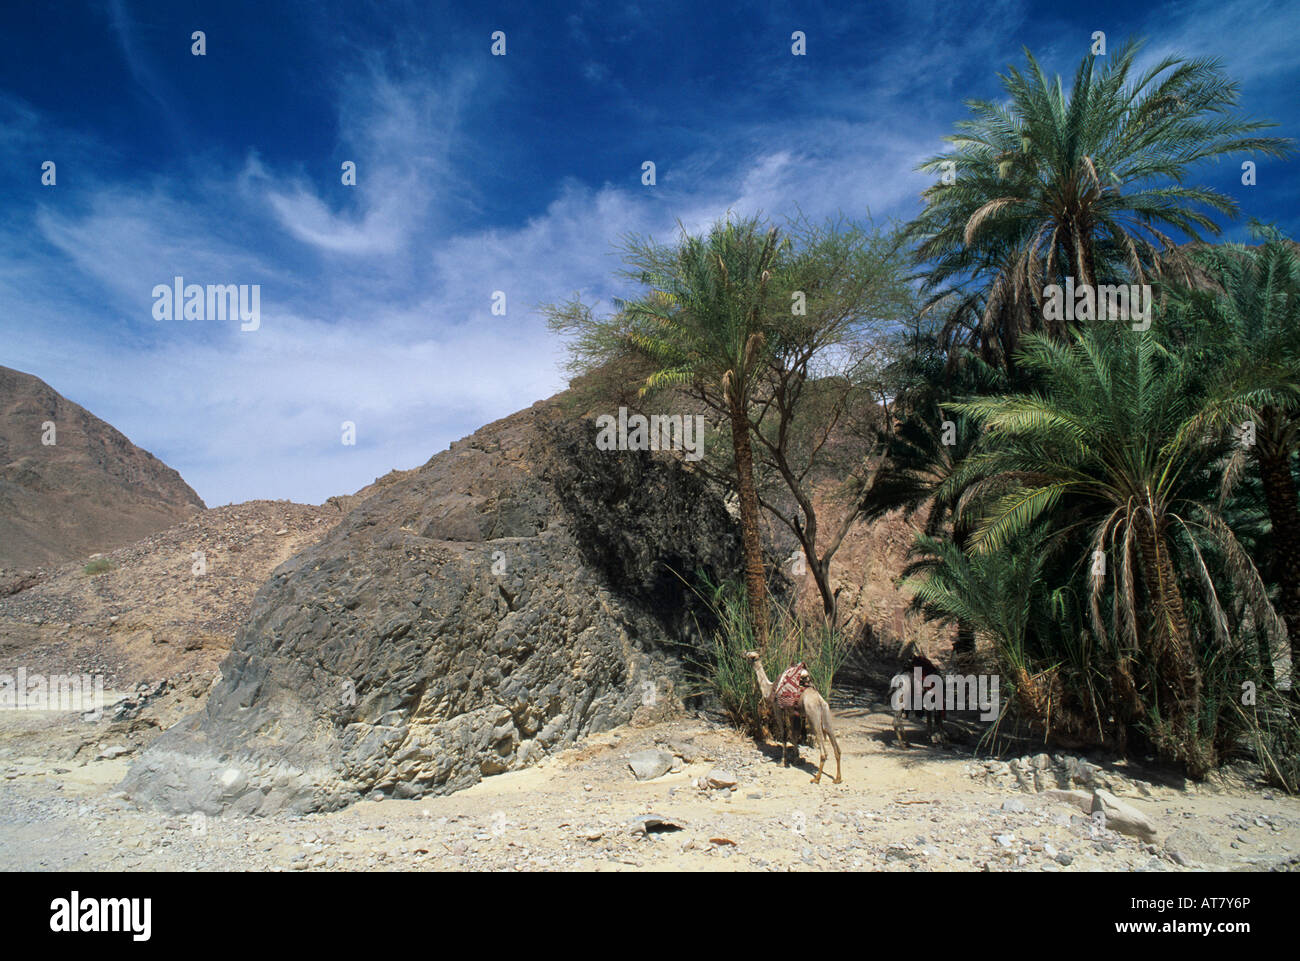 Palm Tree in desert oasis and camel Nuweiba Egypt Oktober 1997 - Stock Image